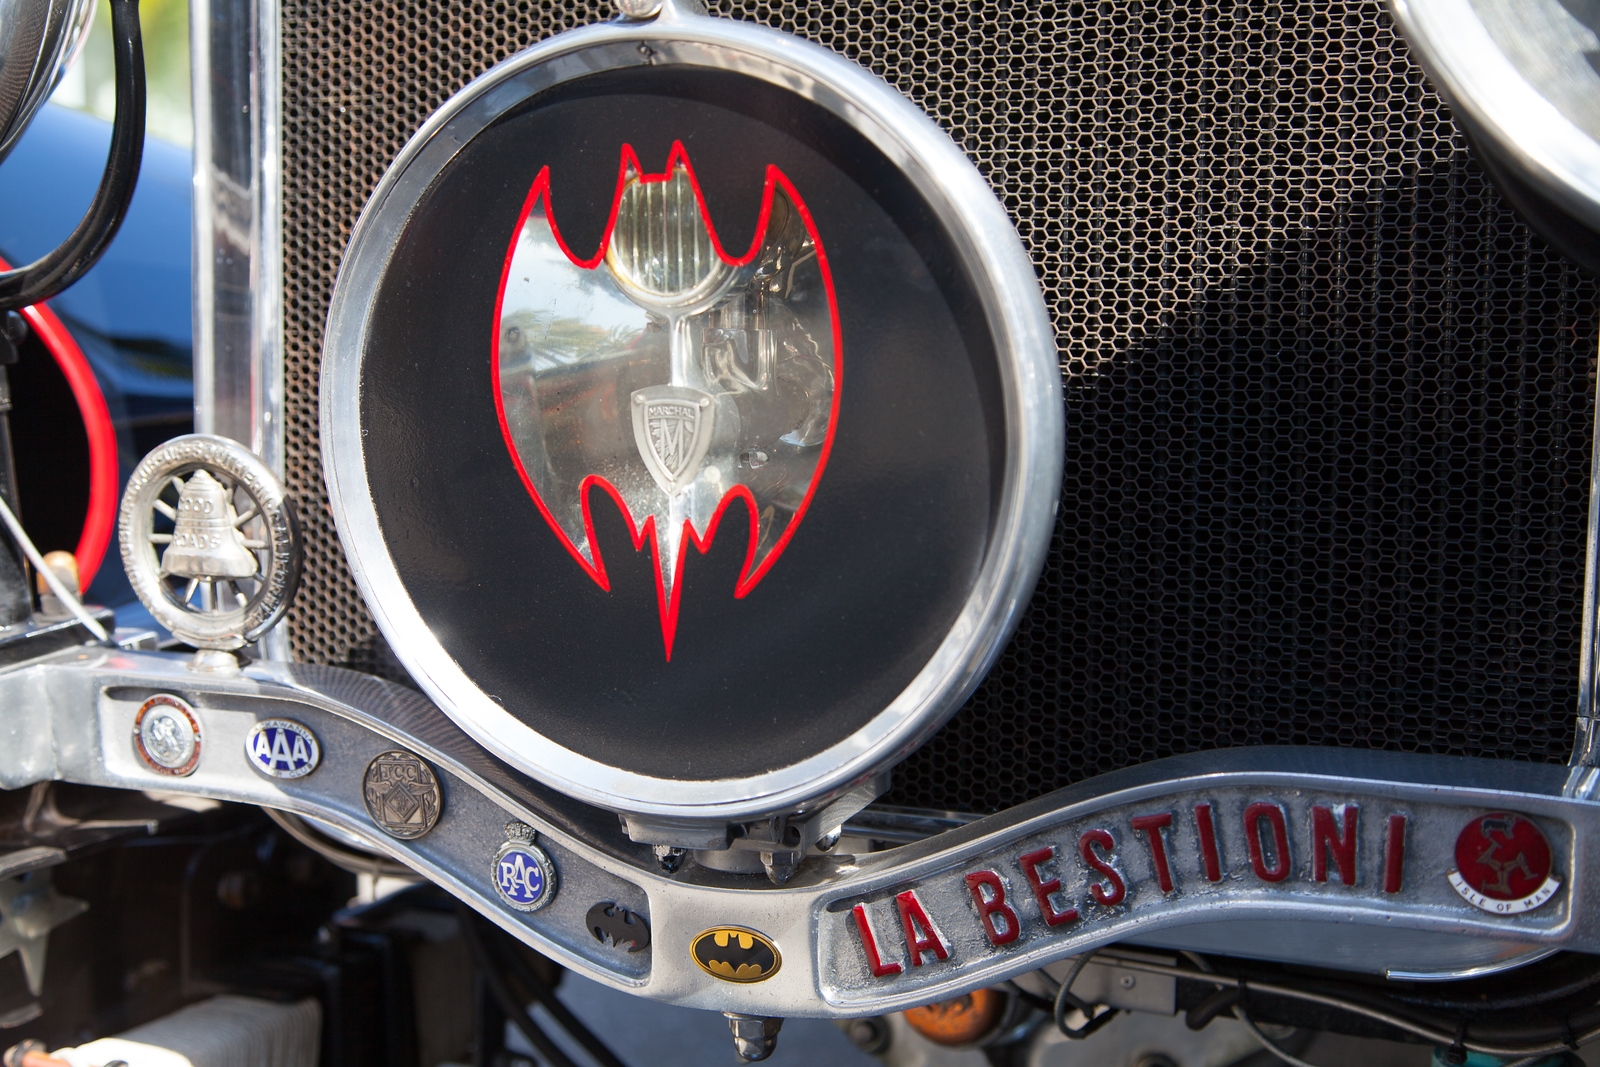 La Bestioni Batmobile, created by Gary Wales